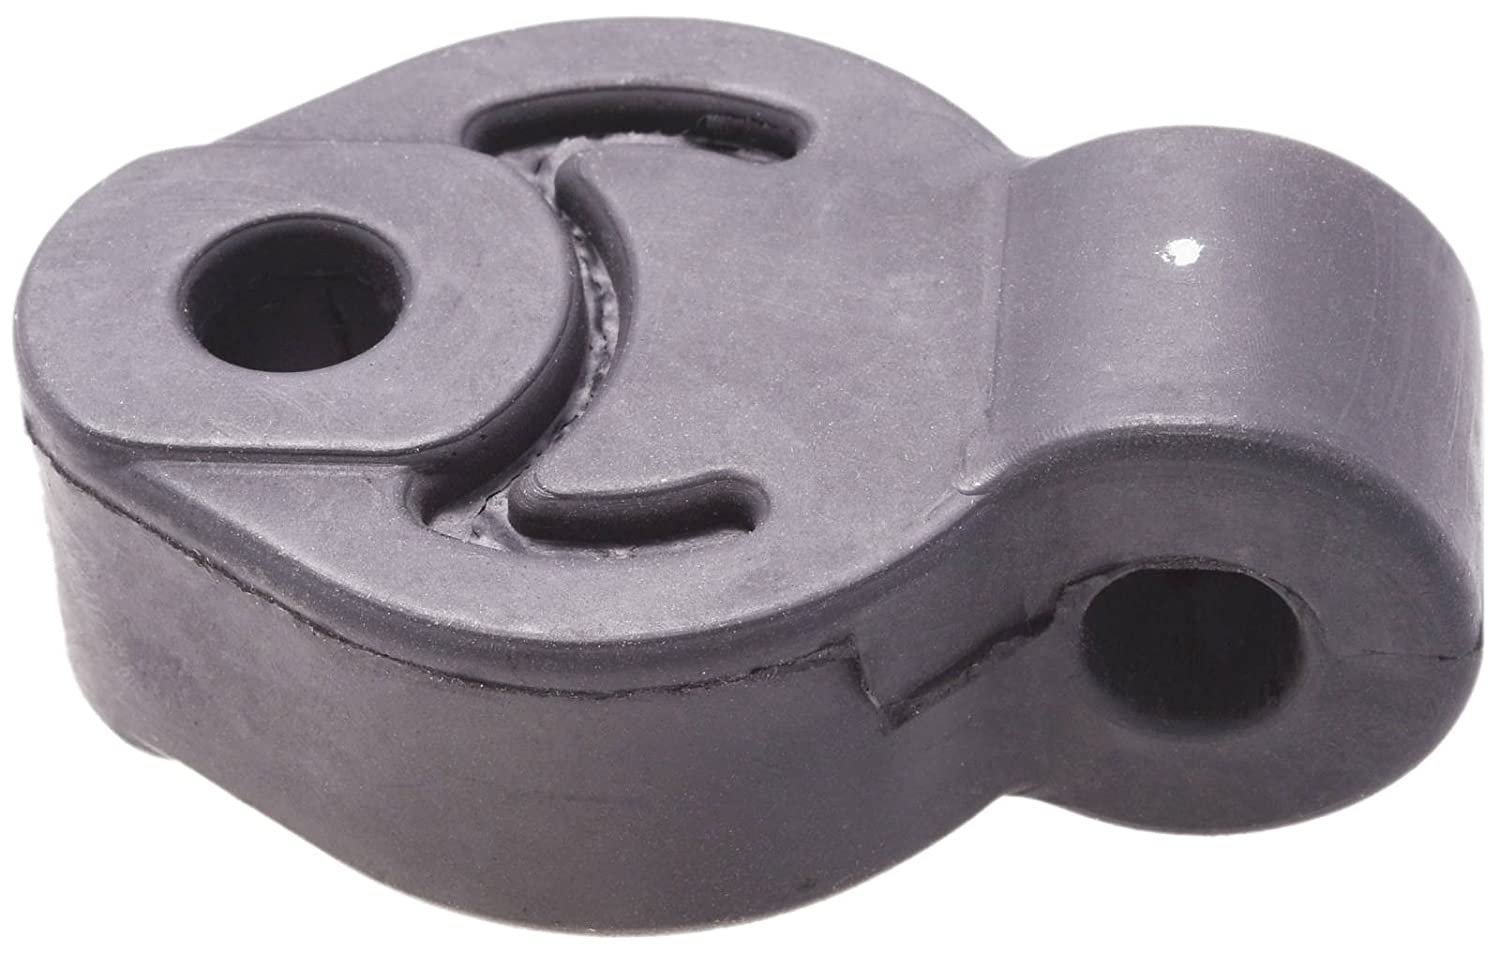 Mr529673 - Exhaust Pipe Support For Mitsubishi - Febest